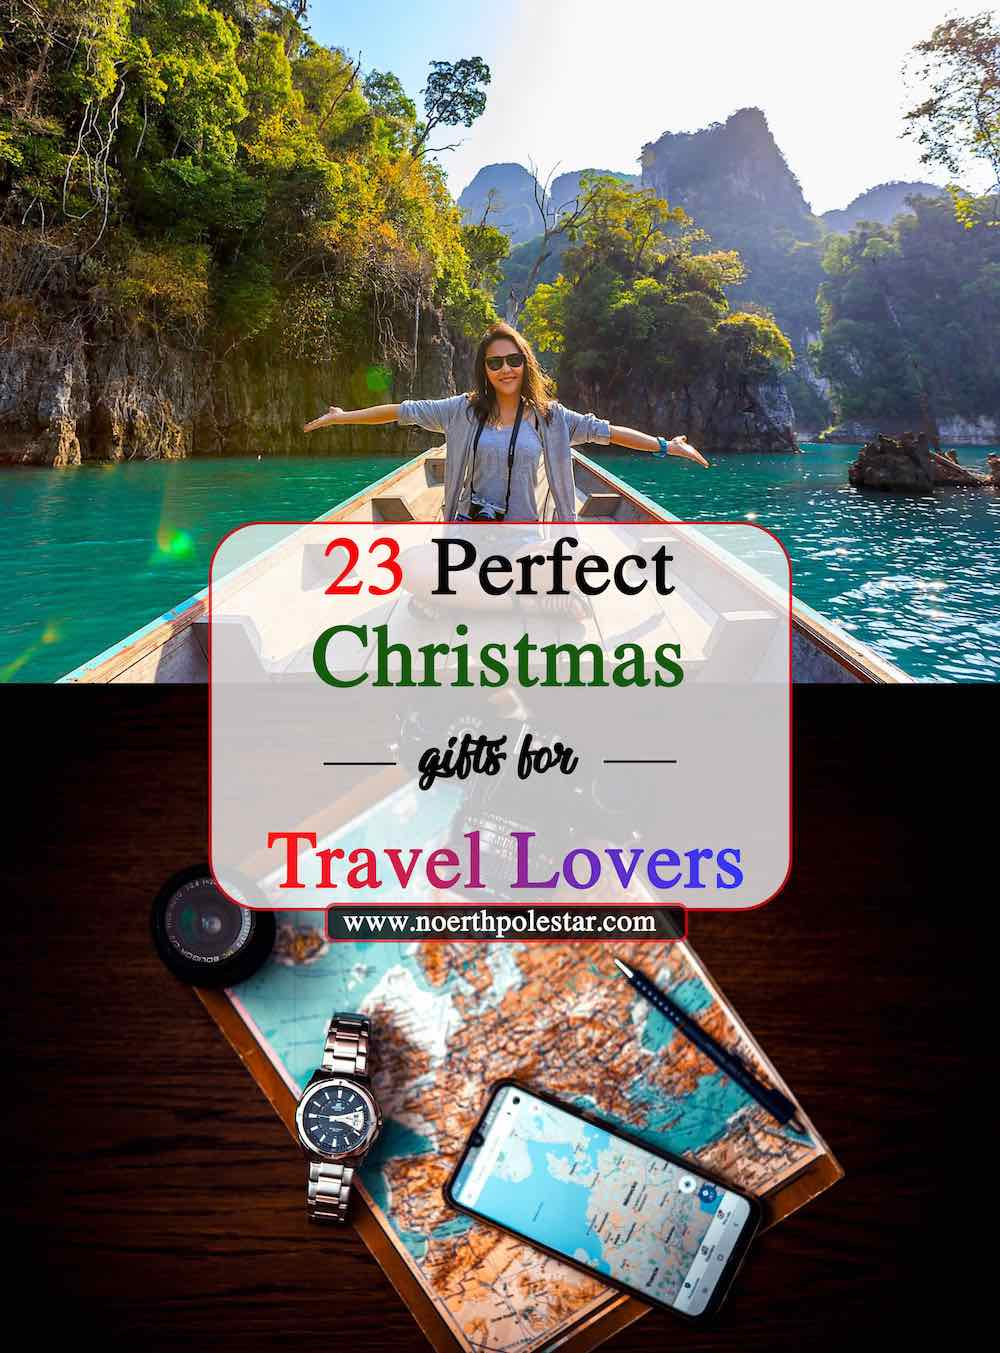 23 Perfect Christmas Gifts for Travel Lovers